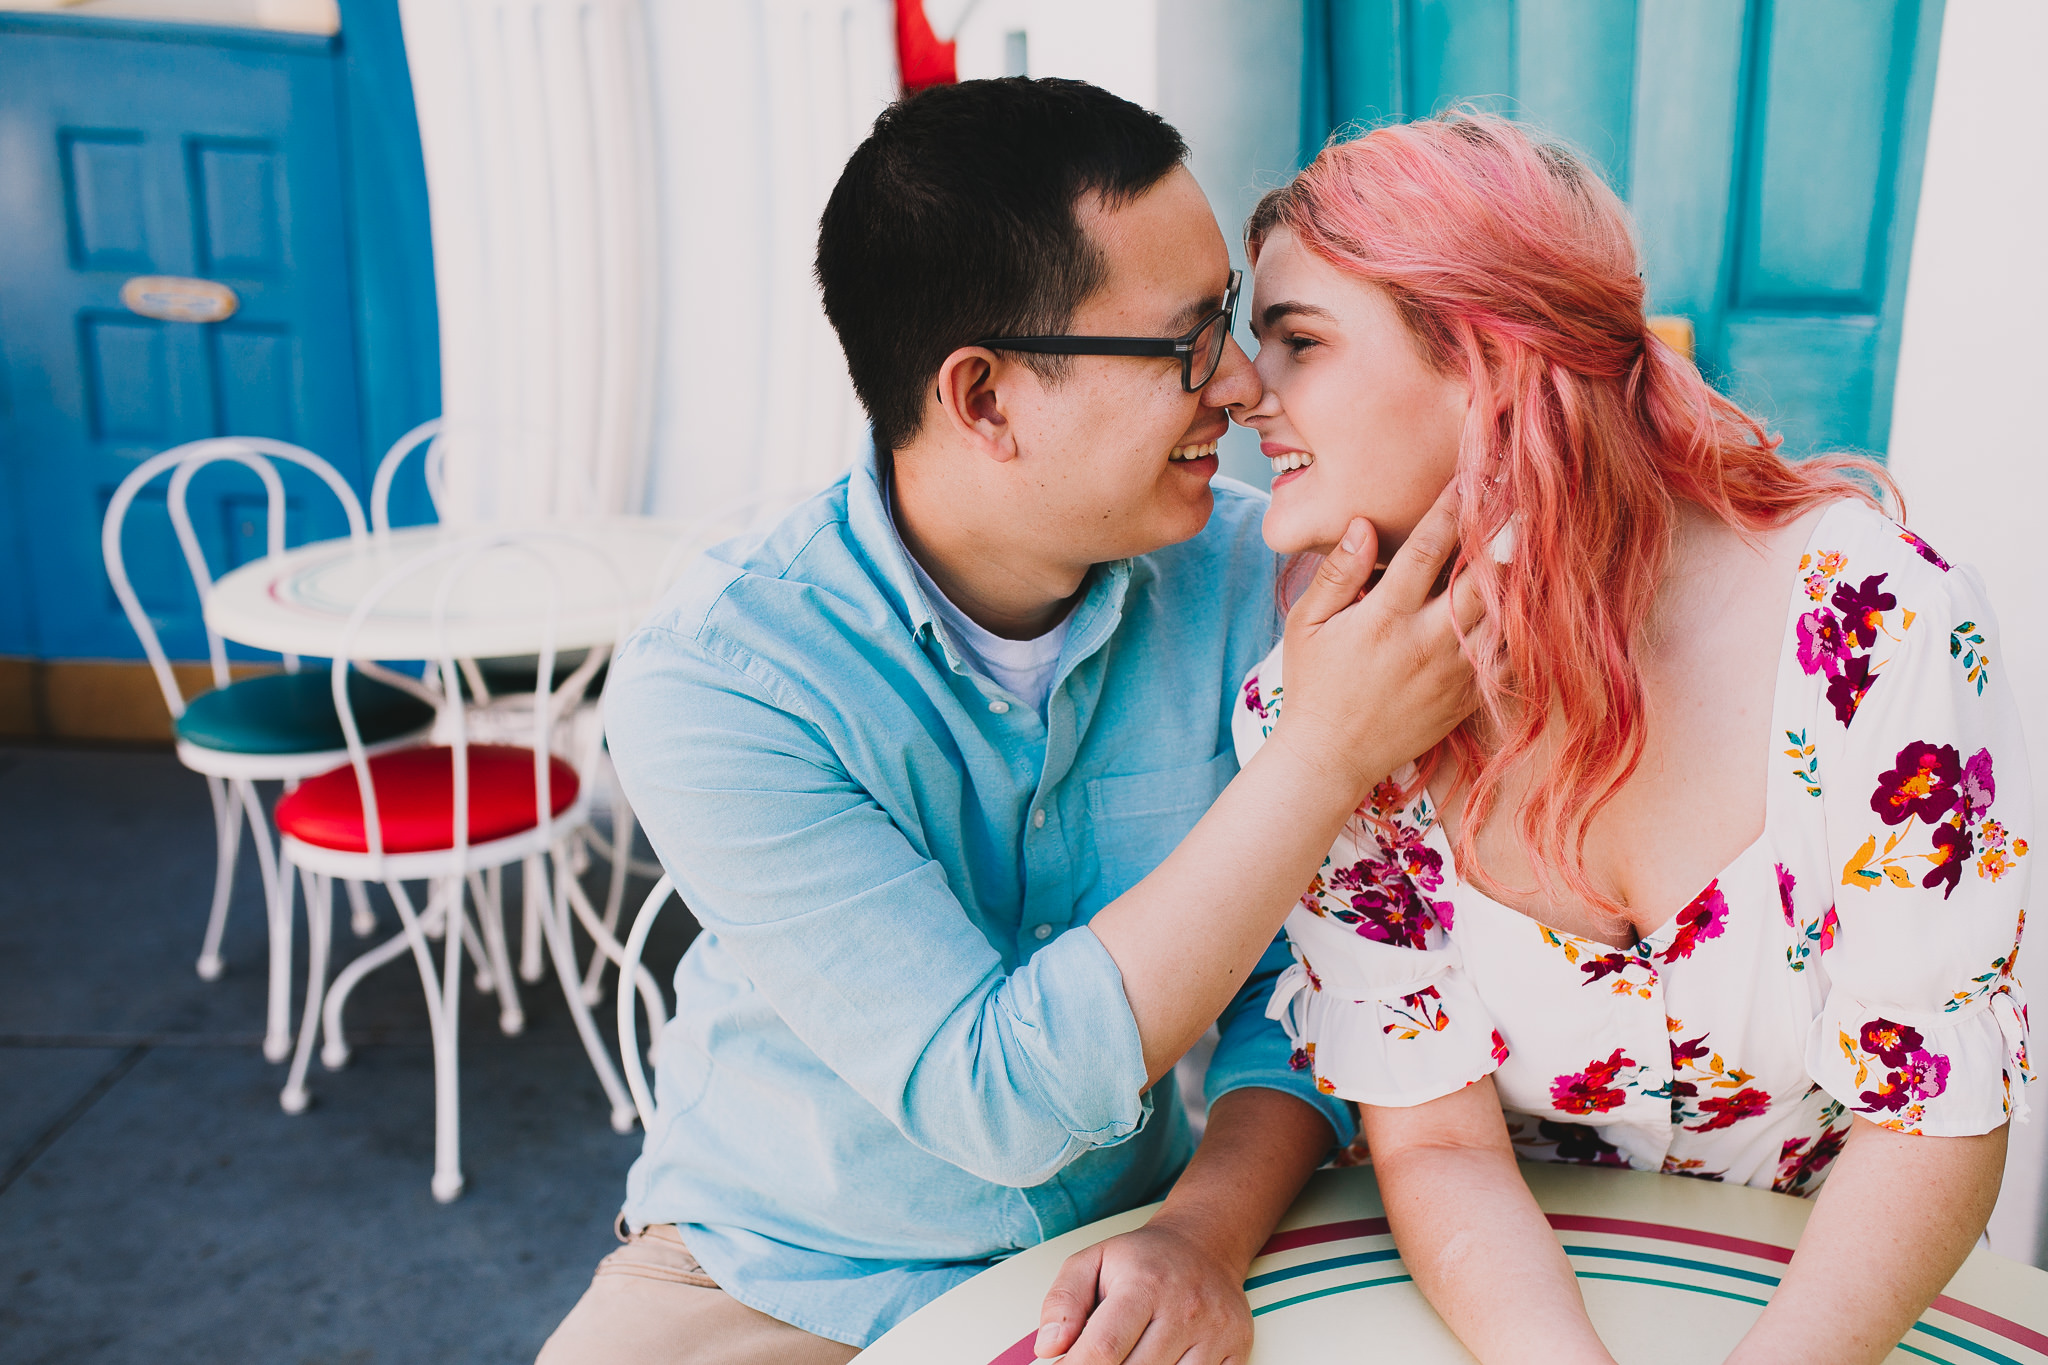 Archer Inspired Photography Disneyland Engagement Wedding Session Southern California Kayla and Kevin Lifestyle Documentary-87.jpg